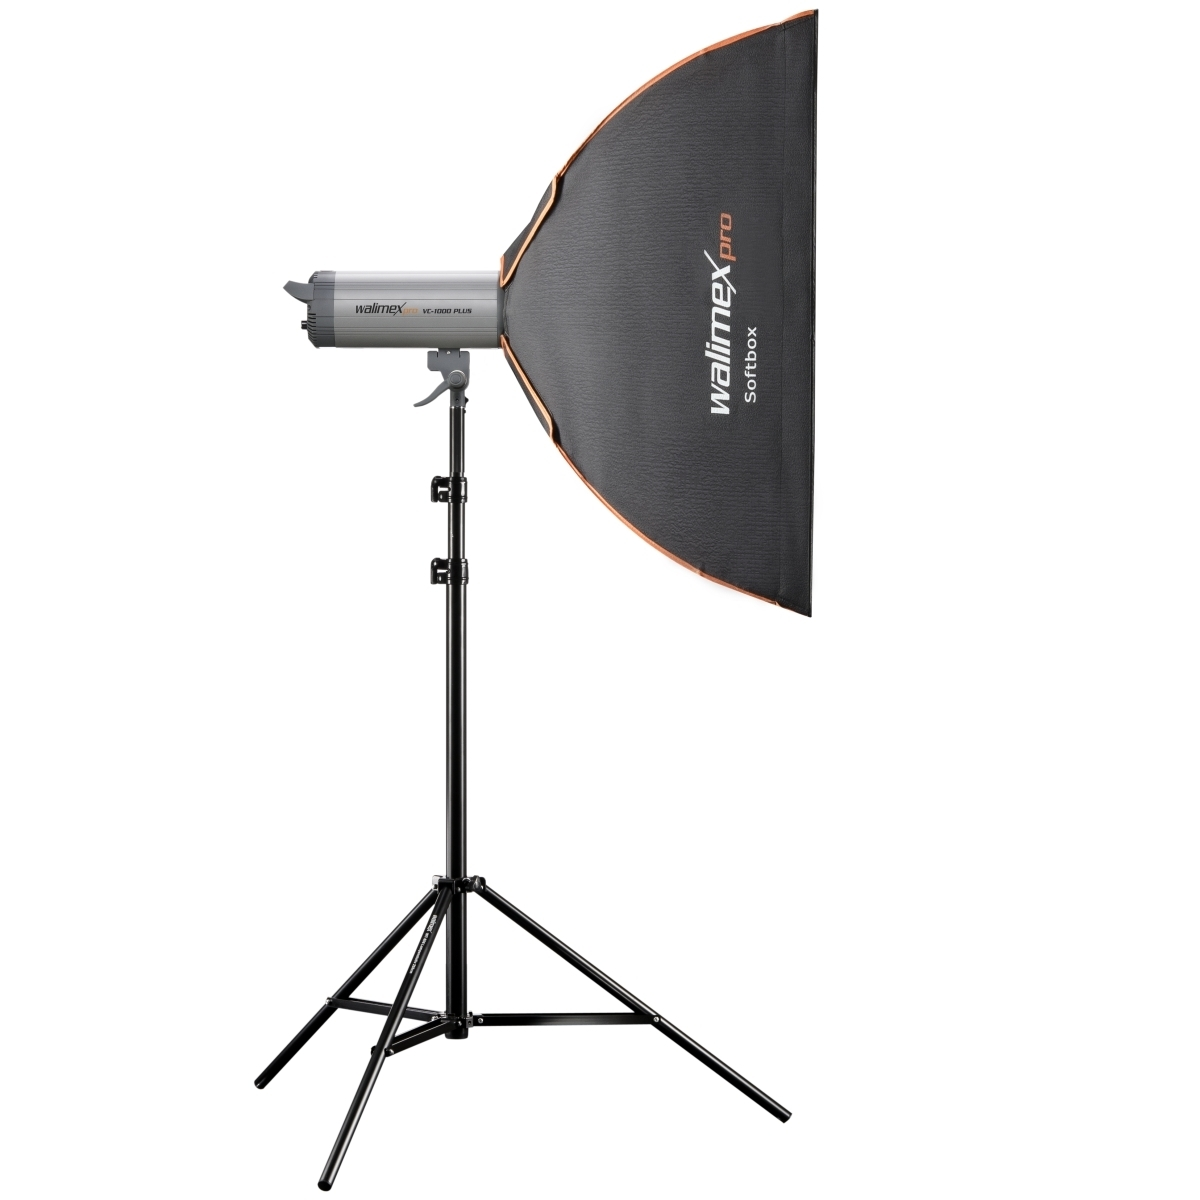 Walimex pro Softbox PLUS OL 90x90cm Broncolor